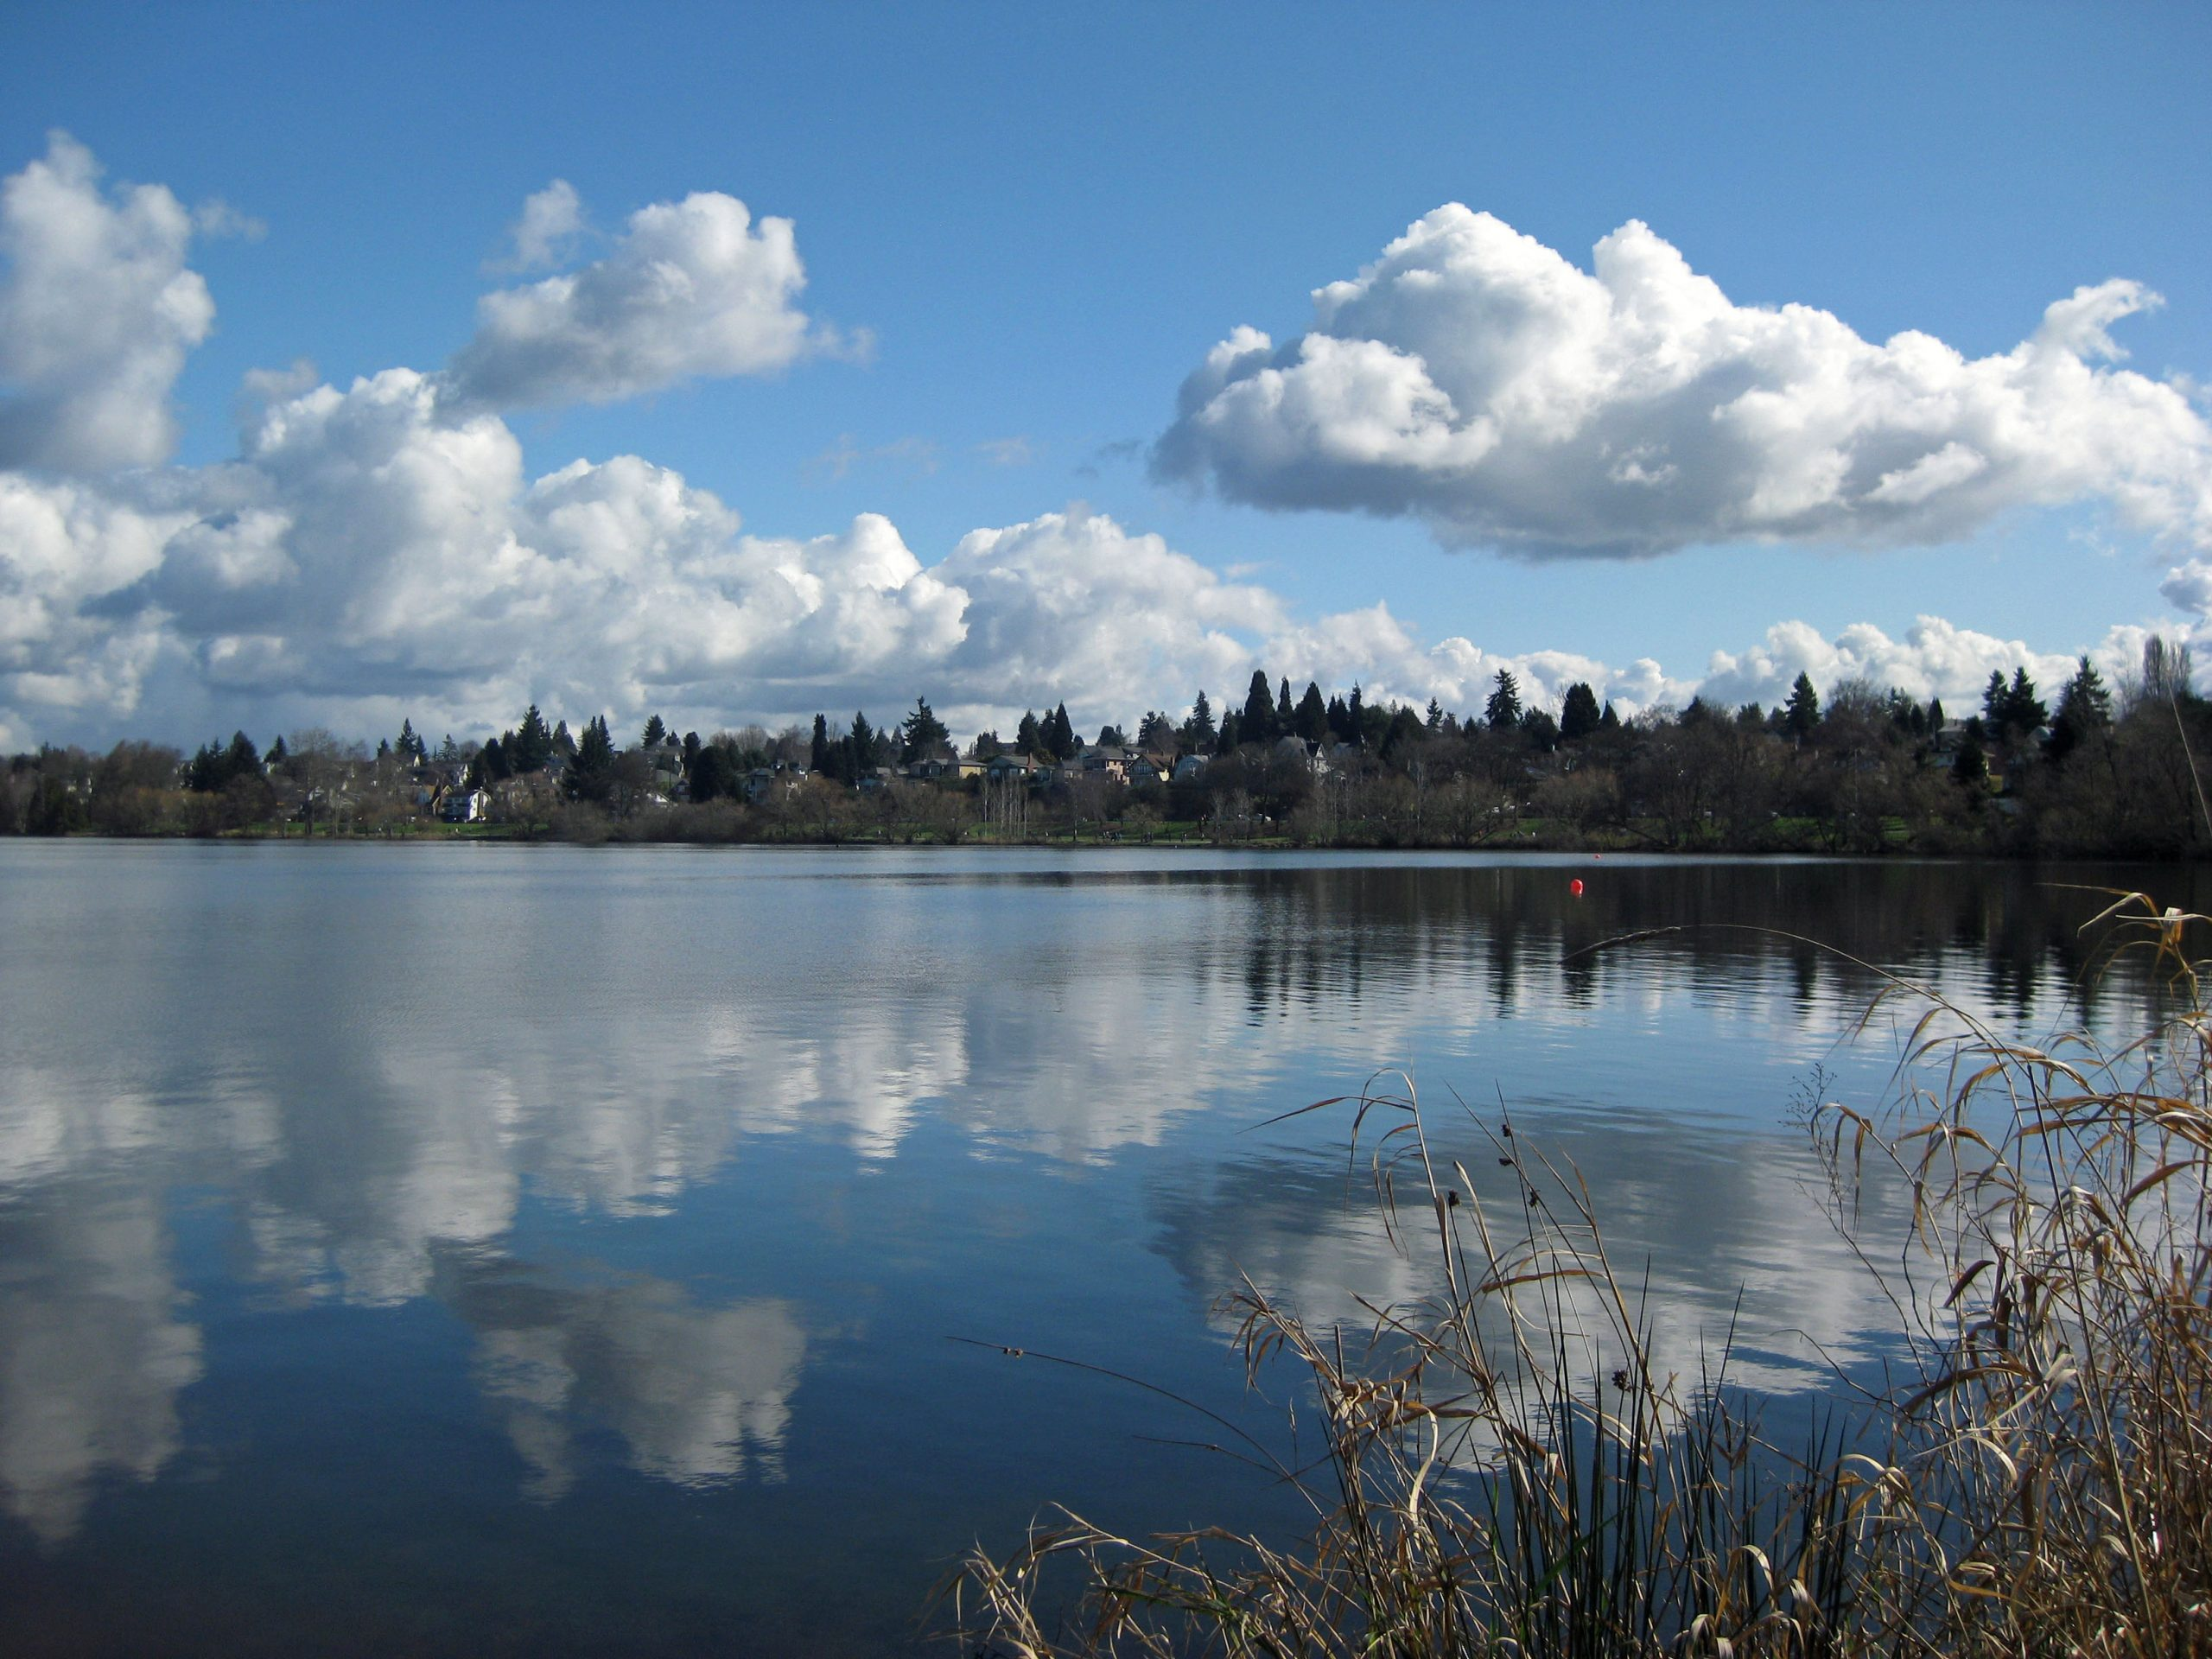 Green Lake, a.k.a. Reflection Lake today. (March 3, 2013)